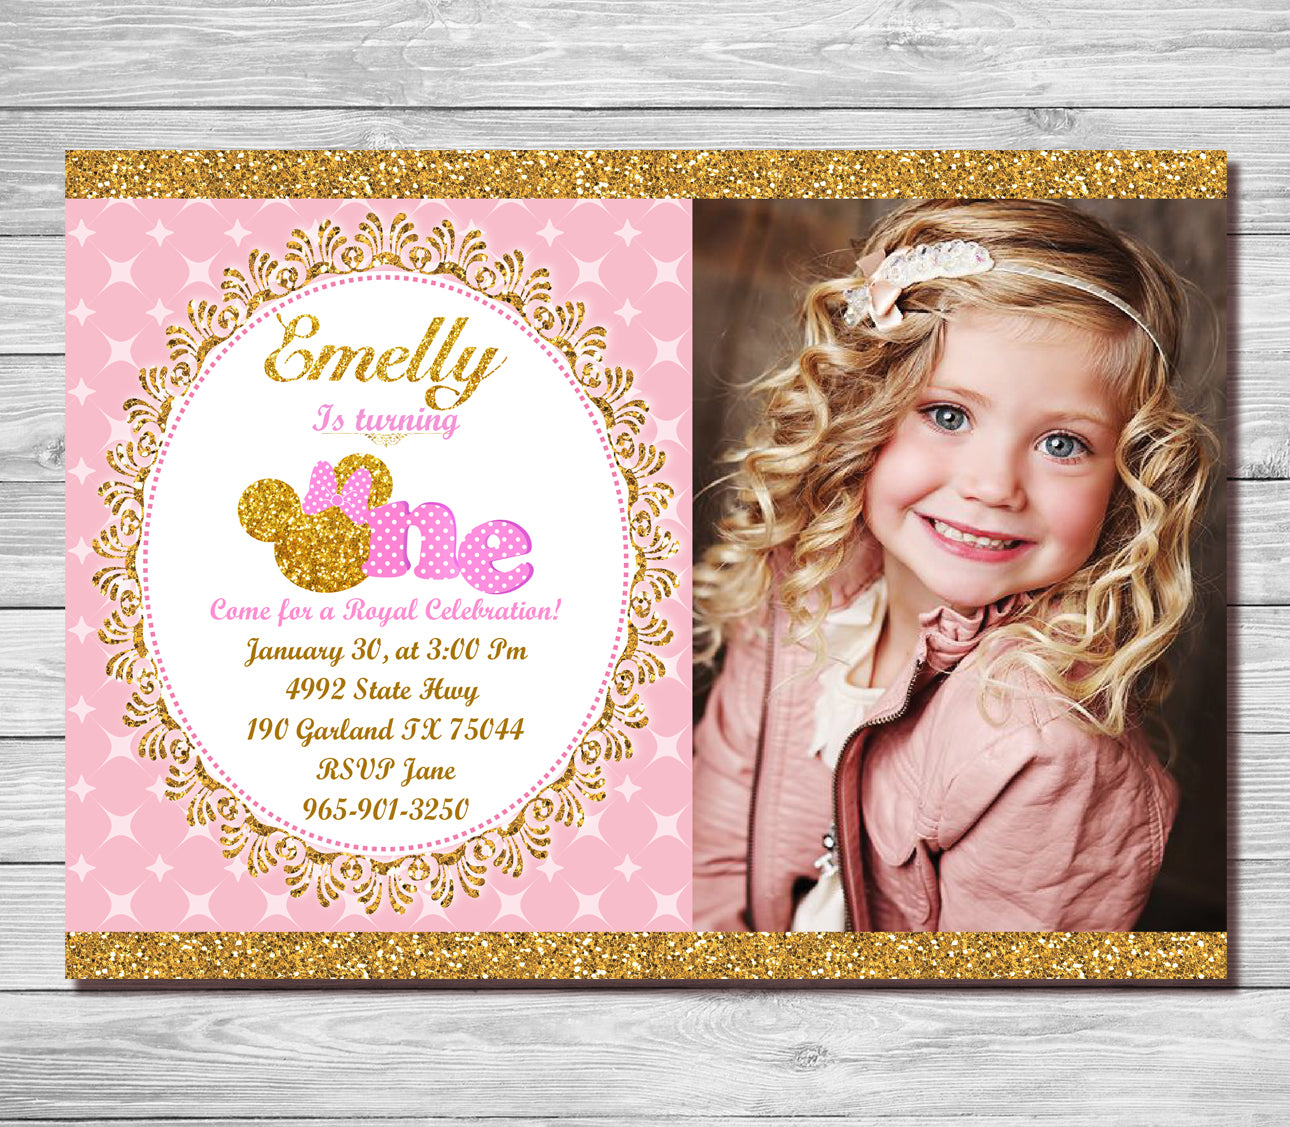 Pink and gold minnie mouse 1st birthday invitation first birthday pink and gold minnie mouse 1st birthday invitation first birthday invite girls polk dots filmwisefo Choice Image